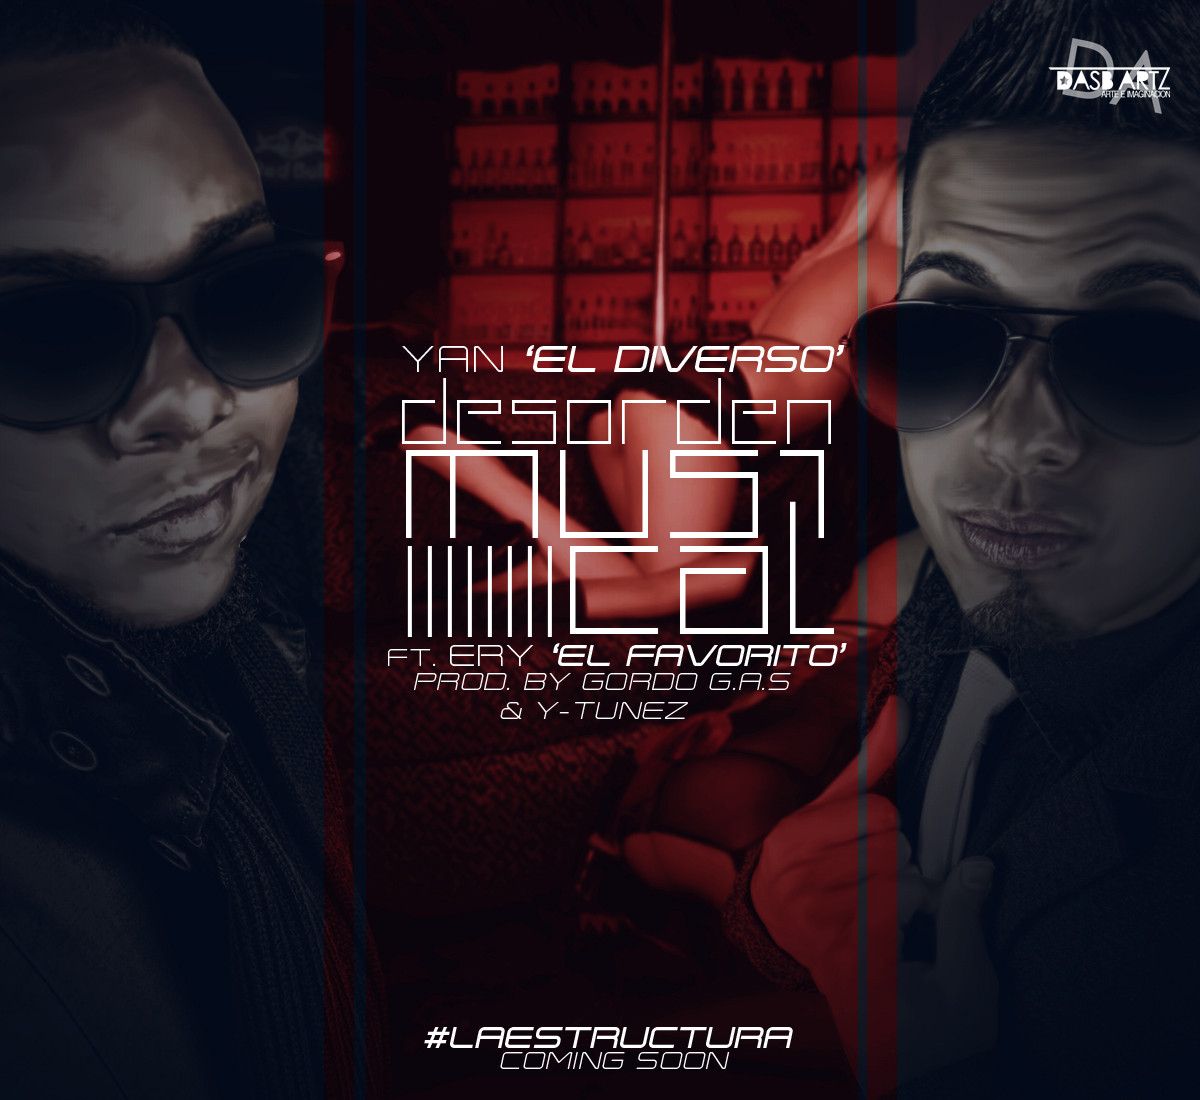 Yan El Diverso Ft. Ery (Keven & Ery) – Desorden Musical (Prod. By Gordo G.A.S & Y-Tunez)